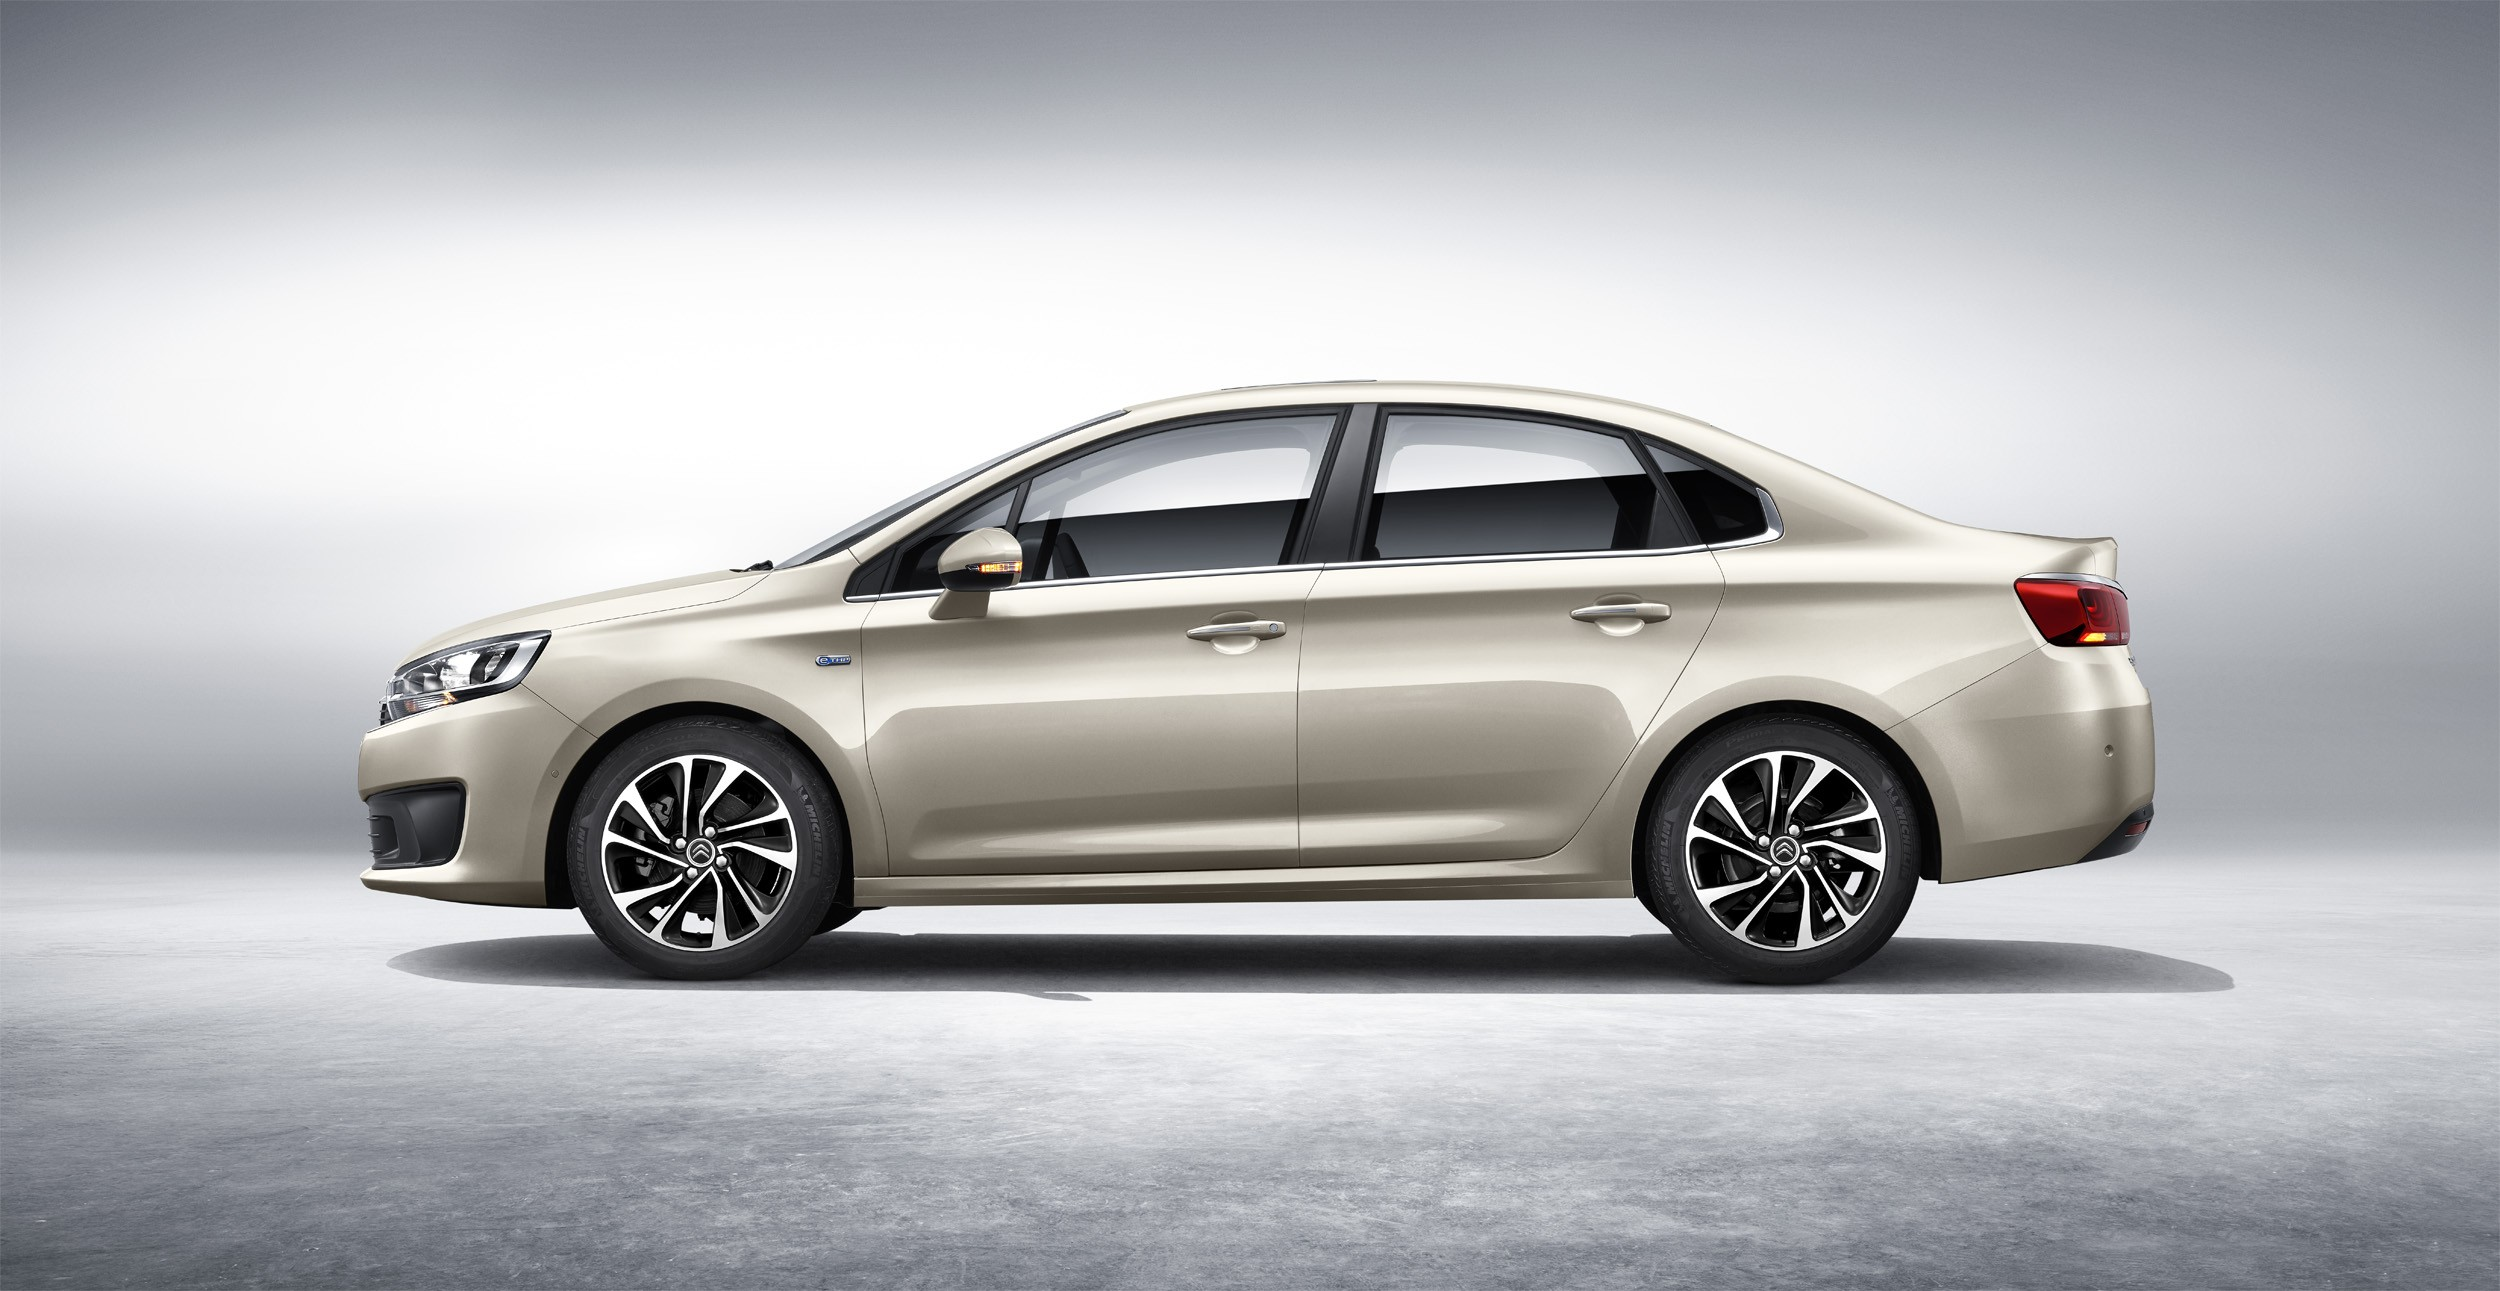 Dongfeng Group Ltd Citroen And Dongfeng Reveal All New C Sedan